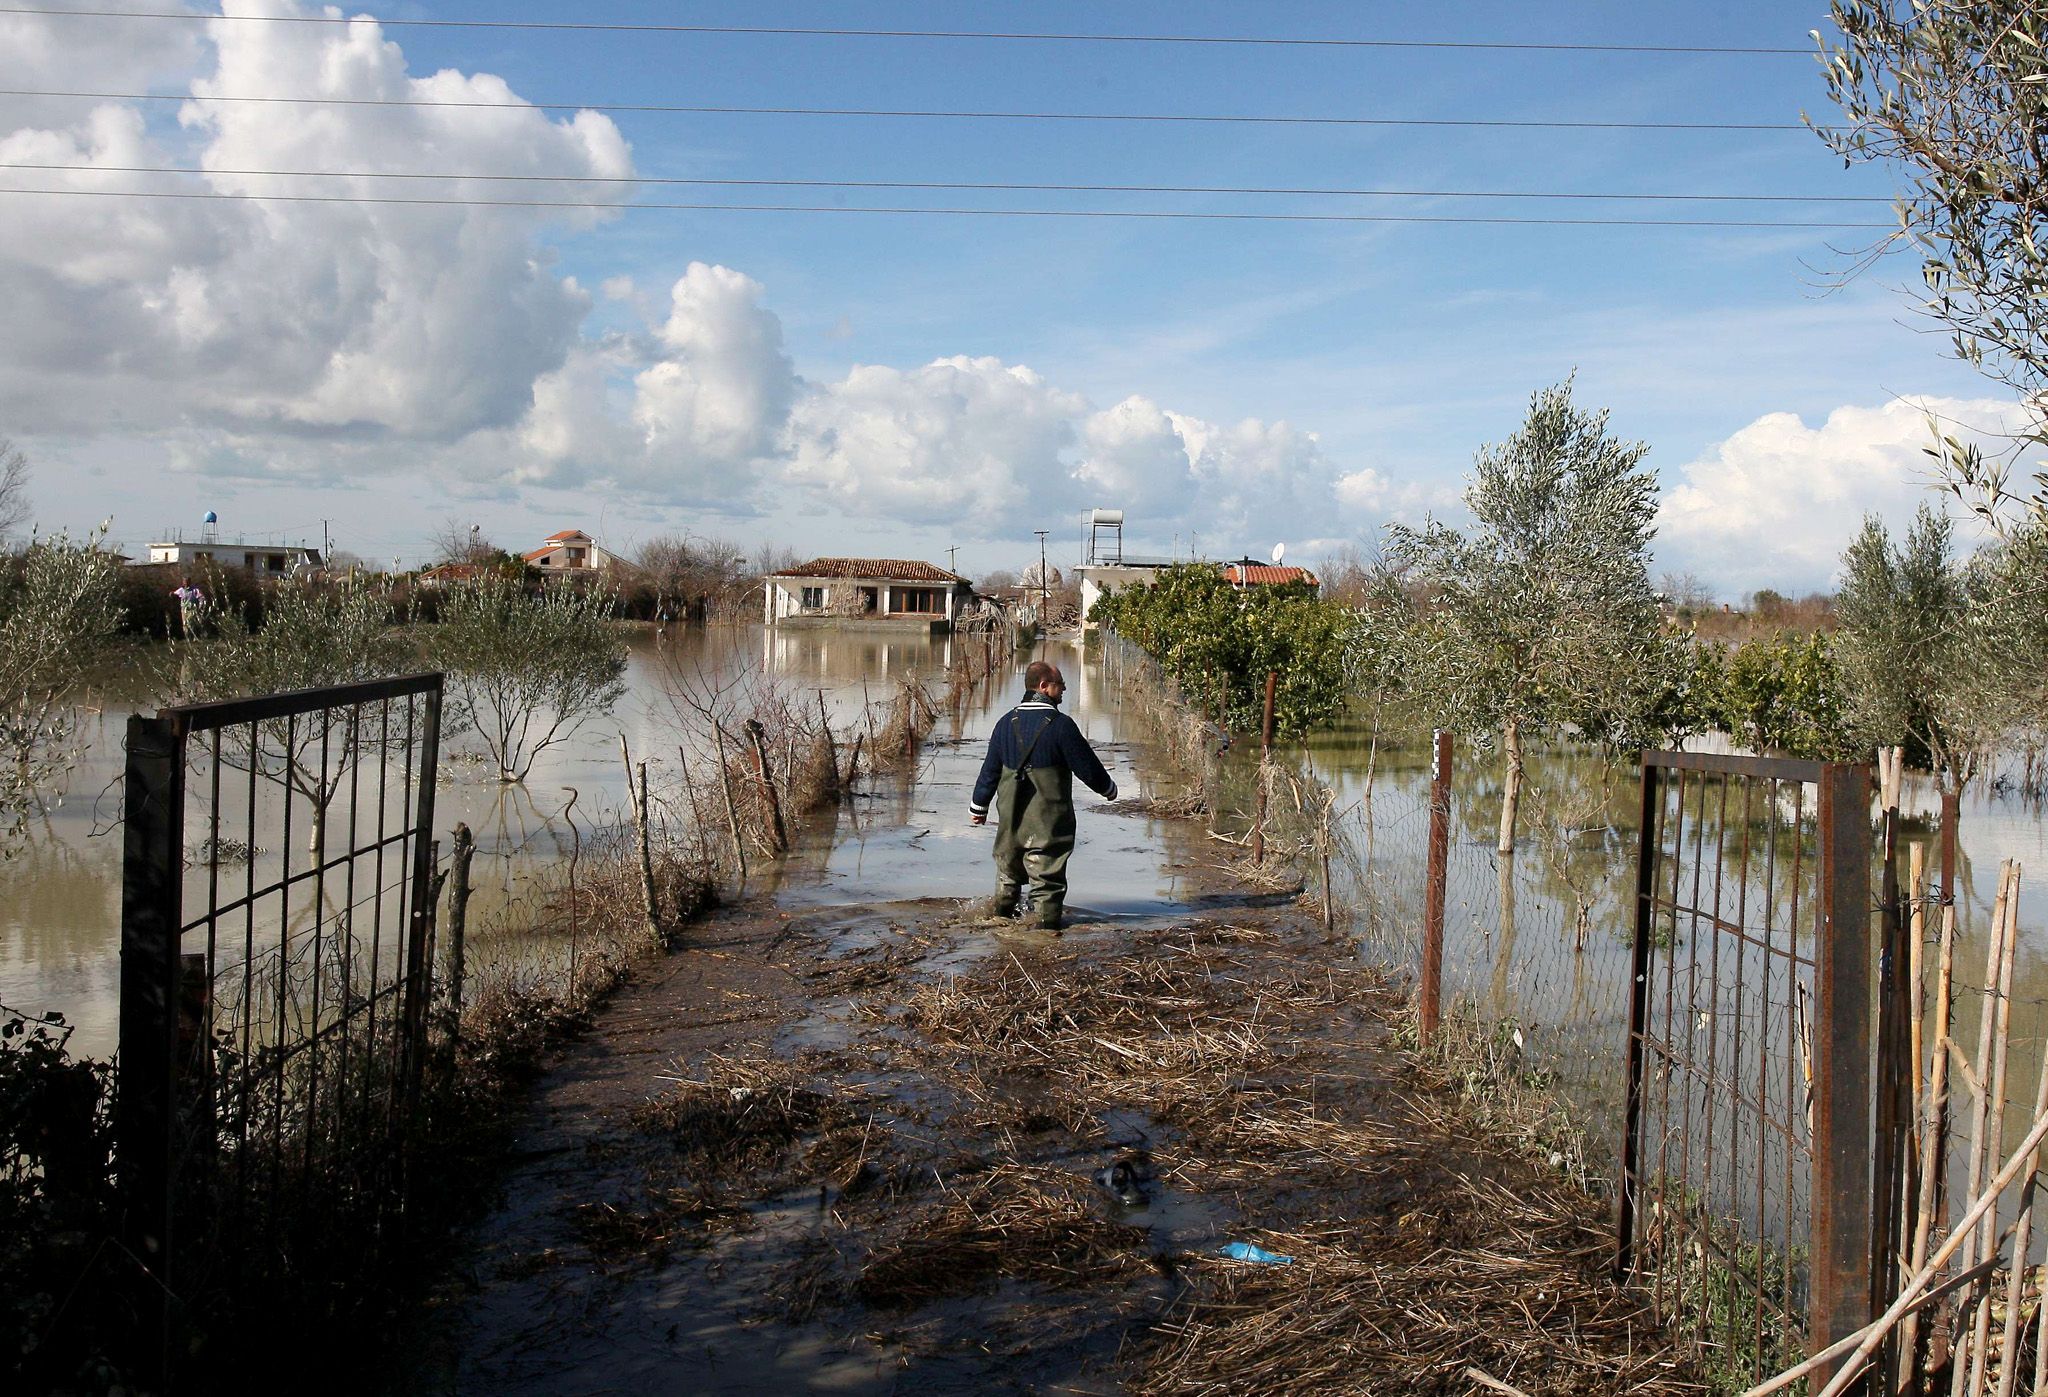 An Albanian man walks through flood waters towards his home in the village of Mifol near the city of Vlora on February 3, 2015. Floods caused by heavy rains over the last days have hit southern Albania, forcing the evacuation of hundreds of villagers after rivers flooded thousands of hectares (acres), hundreds of homes and many roads. Many regions in southern Albania had no power or water. Police urged residents to cancel travel plans and more intense rain was forecast to hit over the next few days. No casualties were reported. AFP PHOTO / GENT SHKULLAKUGENT SHKULLAKU/AFP/Getty Images